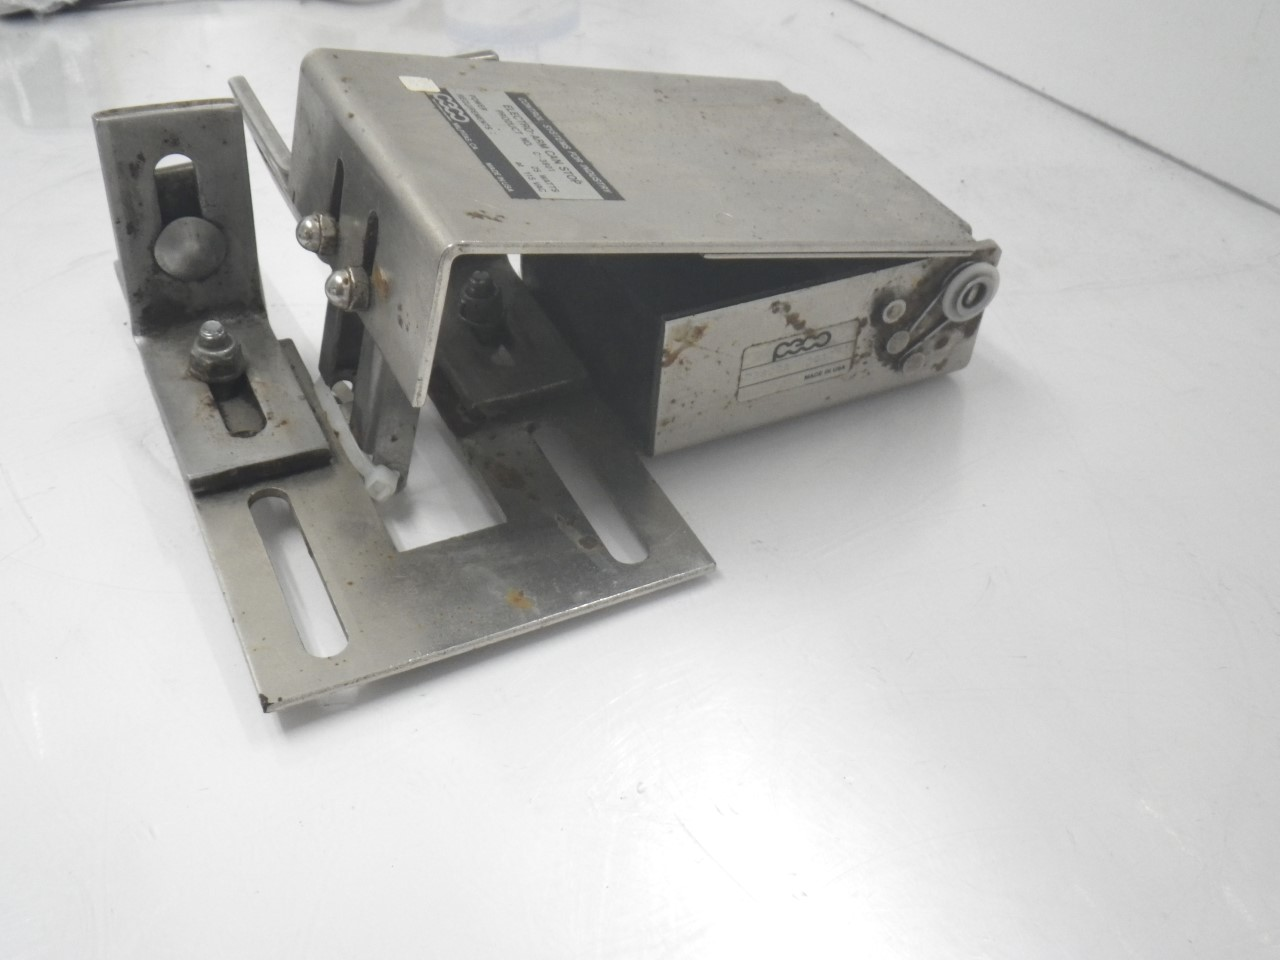 IMGP6937C-3801 C-3800A 3012Peco Electro-arm Controls forPackage Inspection(Used Tested) (18)